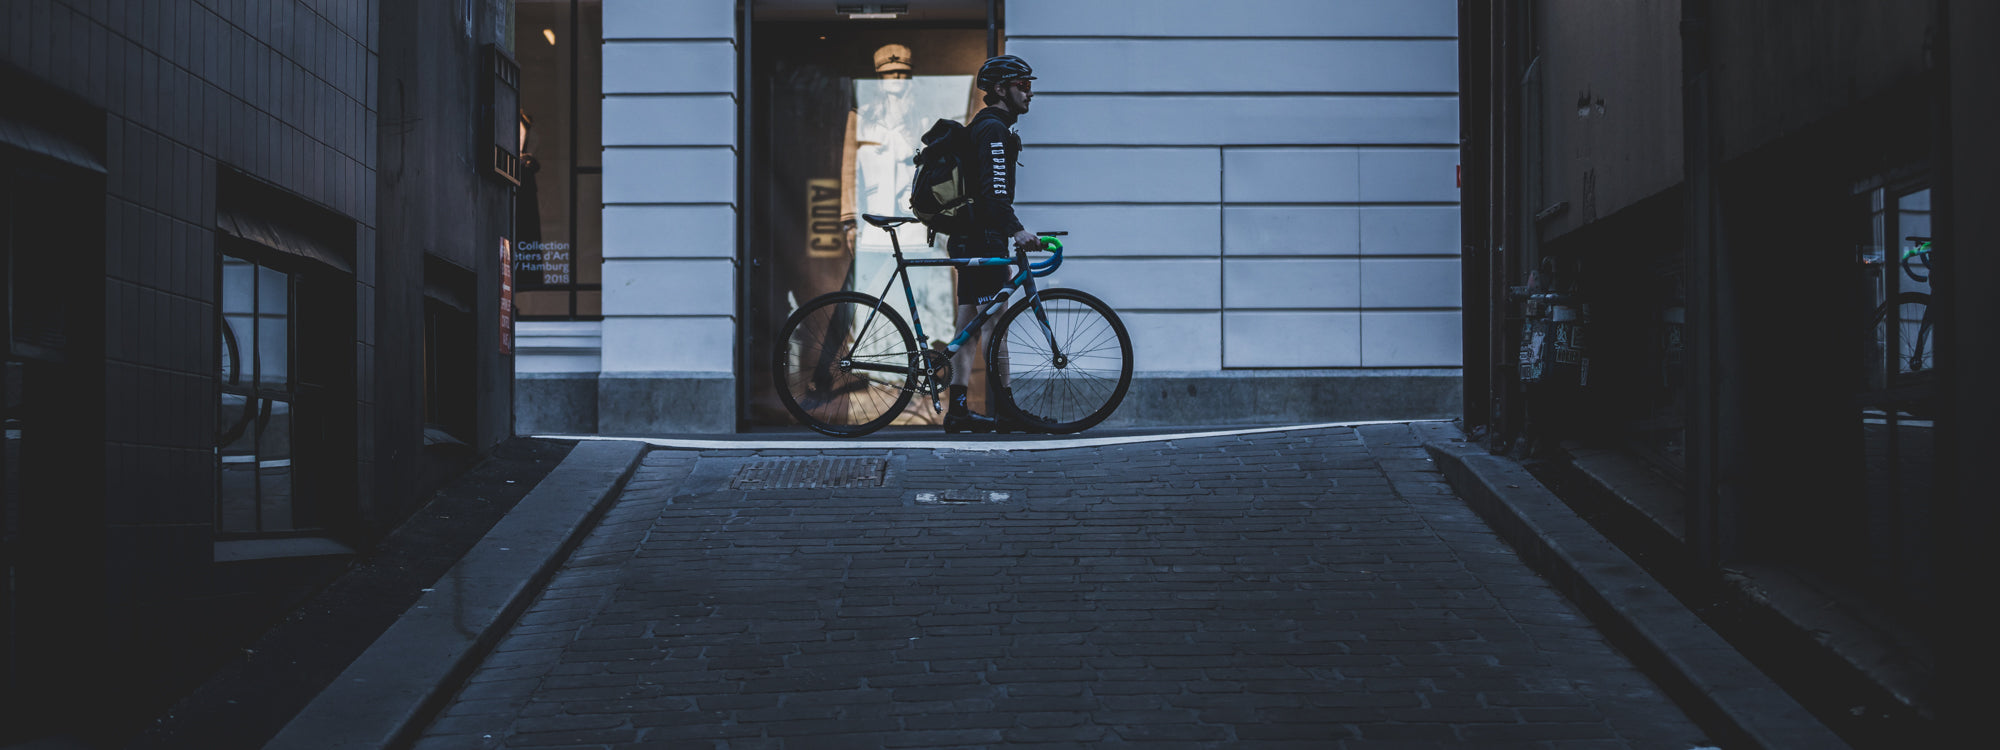 5 Top Tips for Riding A Bike at Night